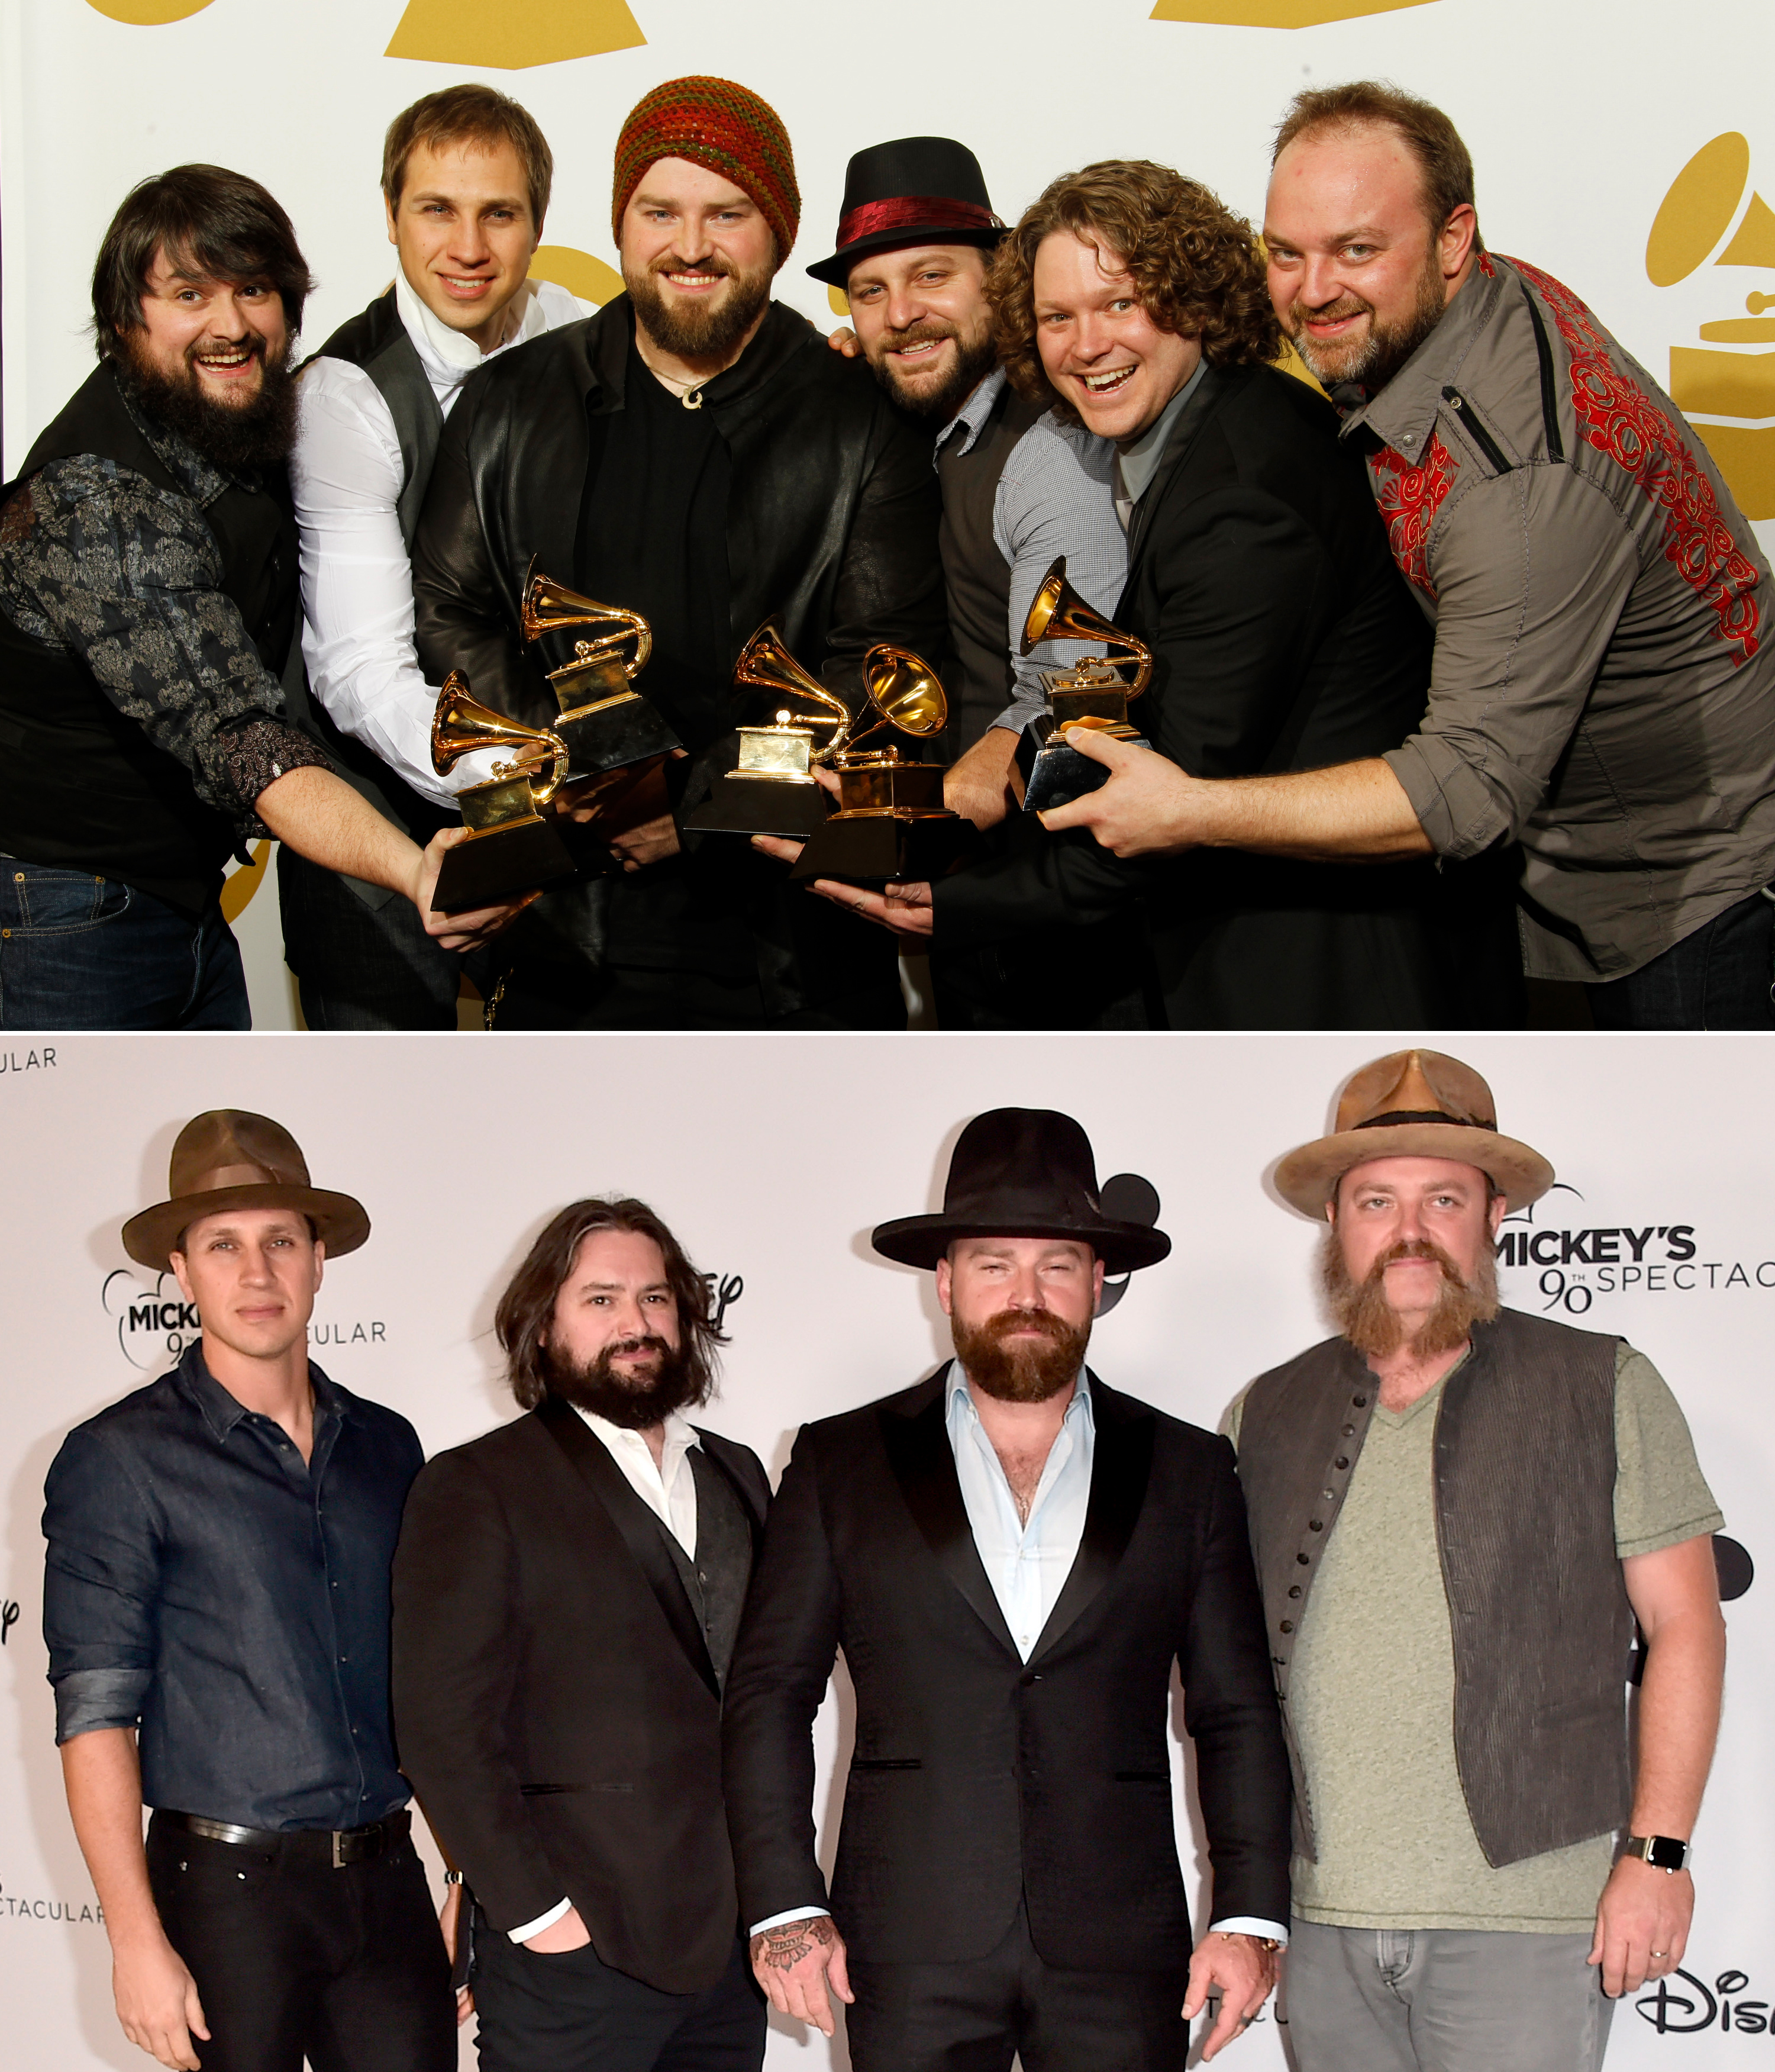 Best New Artist Grammy Winners Where Are They Now - Who They Beat: Keri Hilson, MGMT, Silversun Pickups, The Ting Tings Where Are They Now: Daniel De Los Reyes, percussion, and Matt Manago, bass guitar, joined the band in 2012 and 2014, respectively, after the group won Best New Artist in 2010. Zac Brown Band has released four albums since their first Grammy win and went on to snag two more gold-plated trophies.